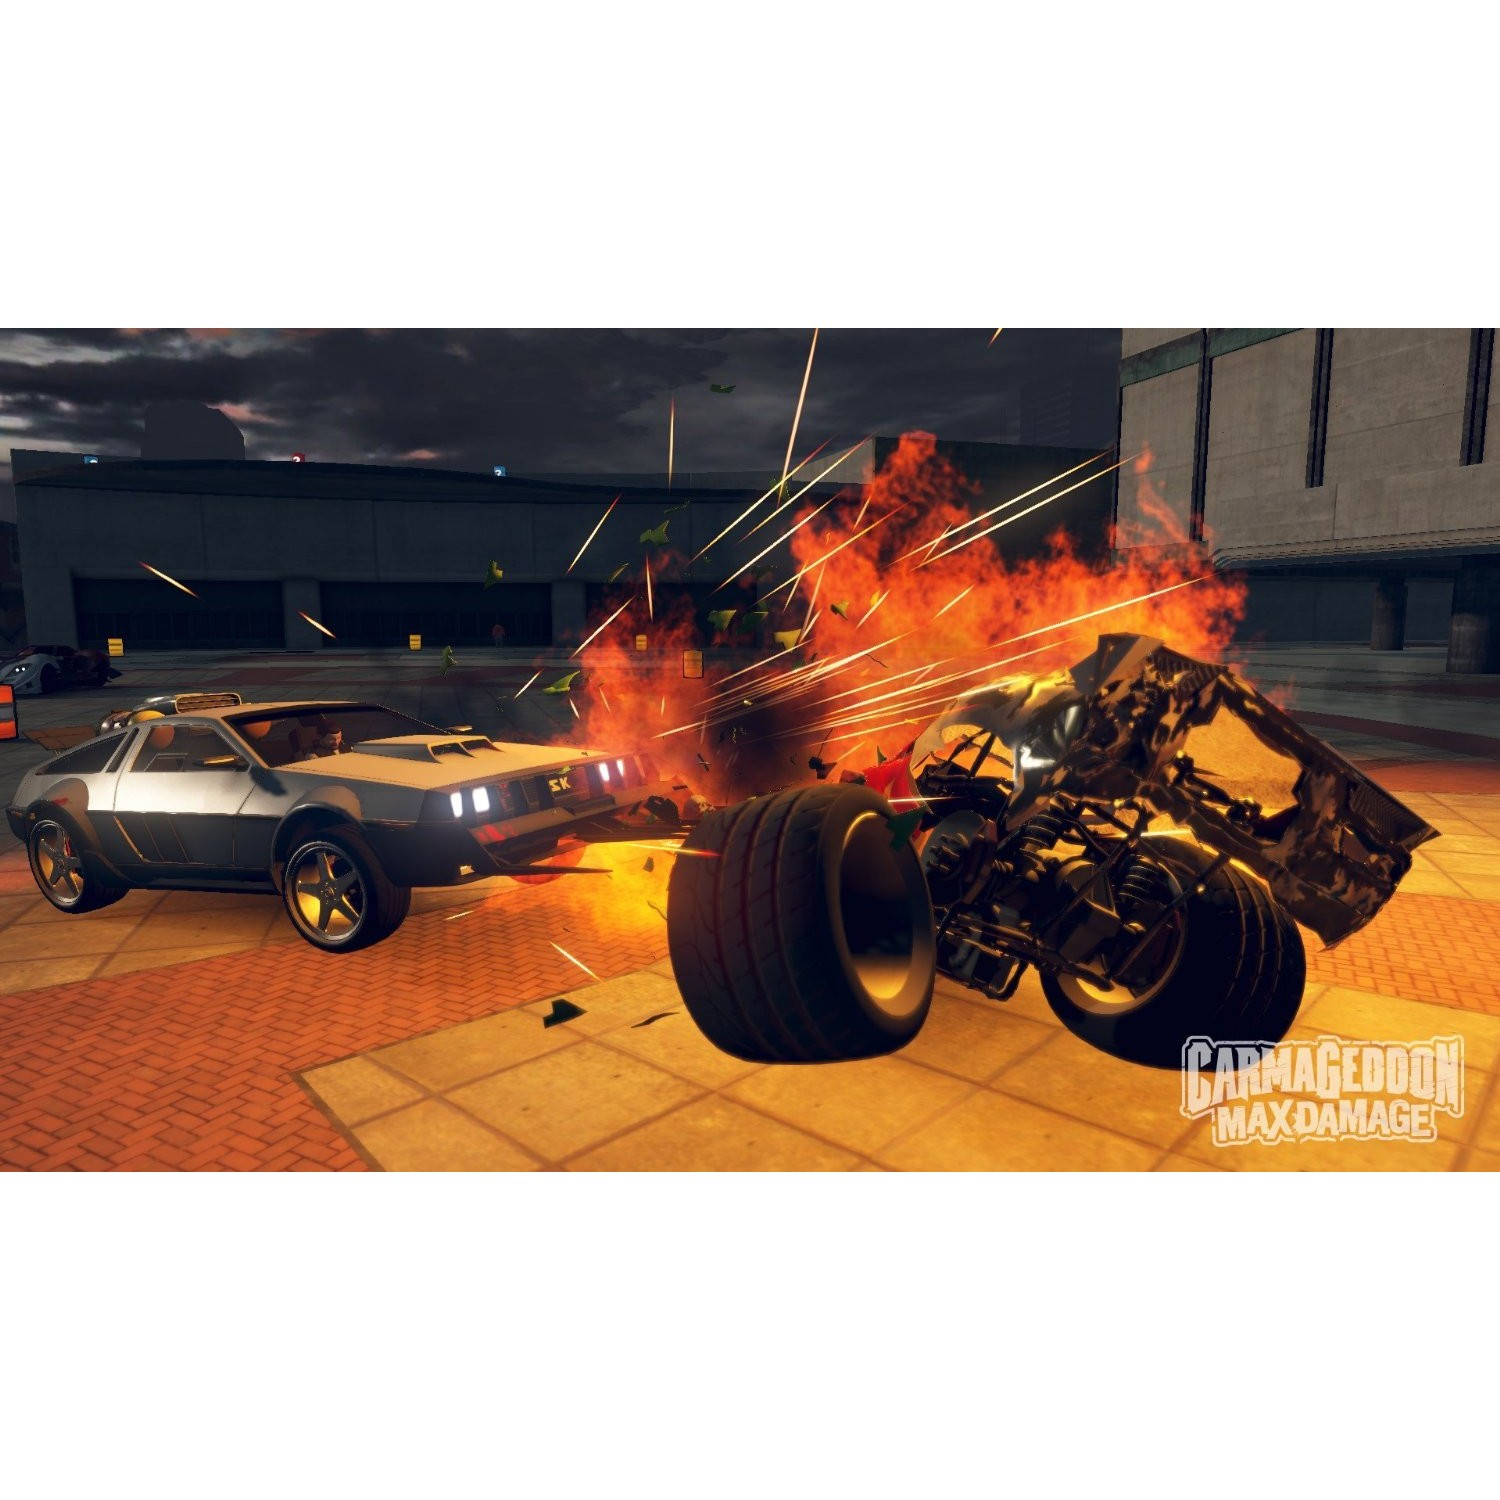 Joc Carmageddon: Max Damage Ps4 6